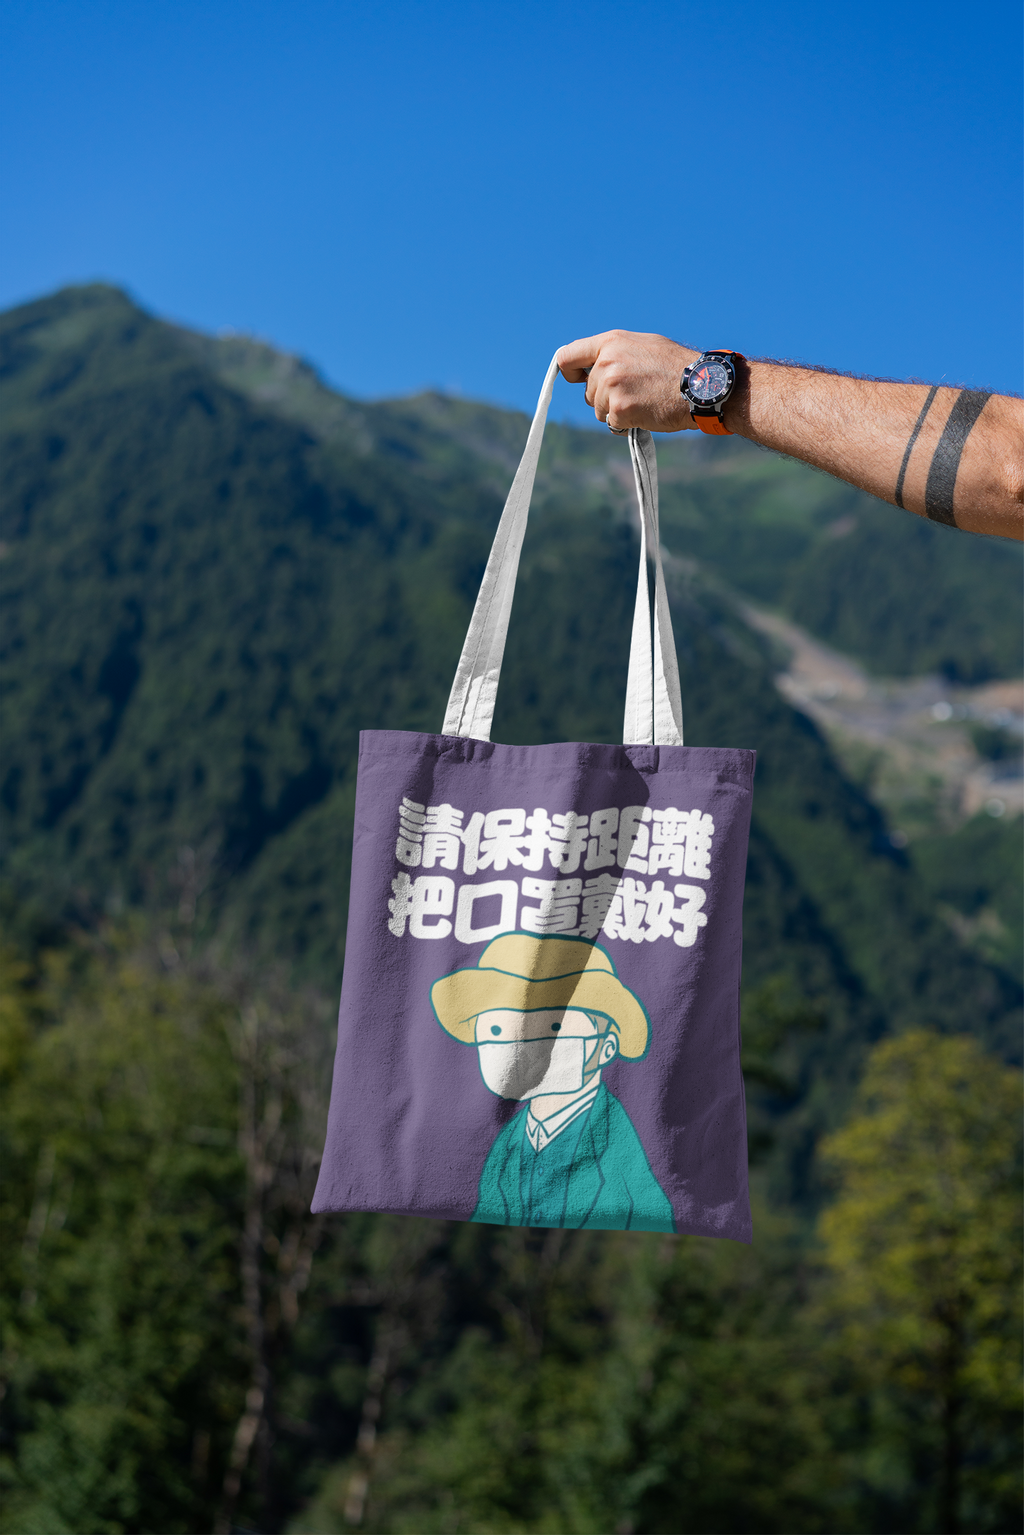 mockup-featuring-a-man-s-hand-holding-a-tote-bag-against-a-natural-scenery-3131-el1 (33).png